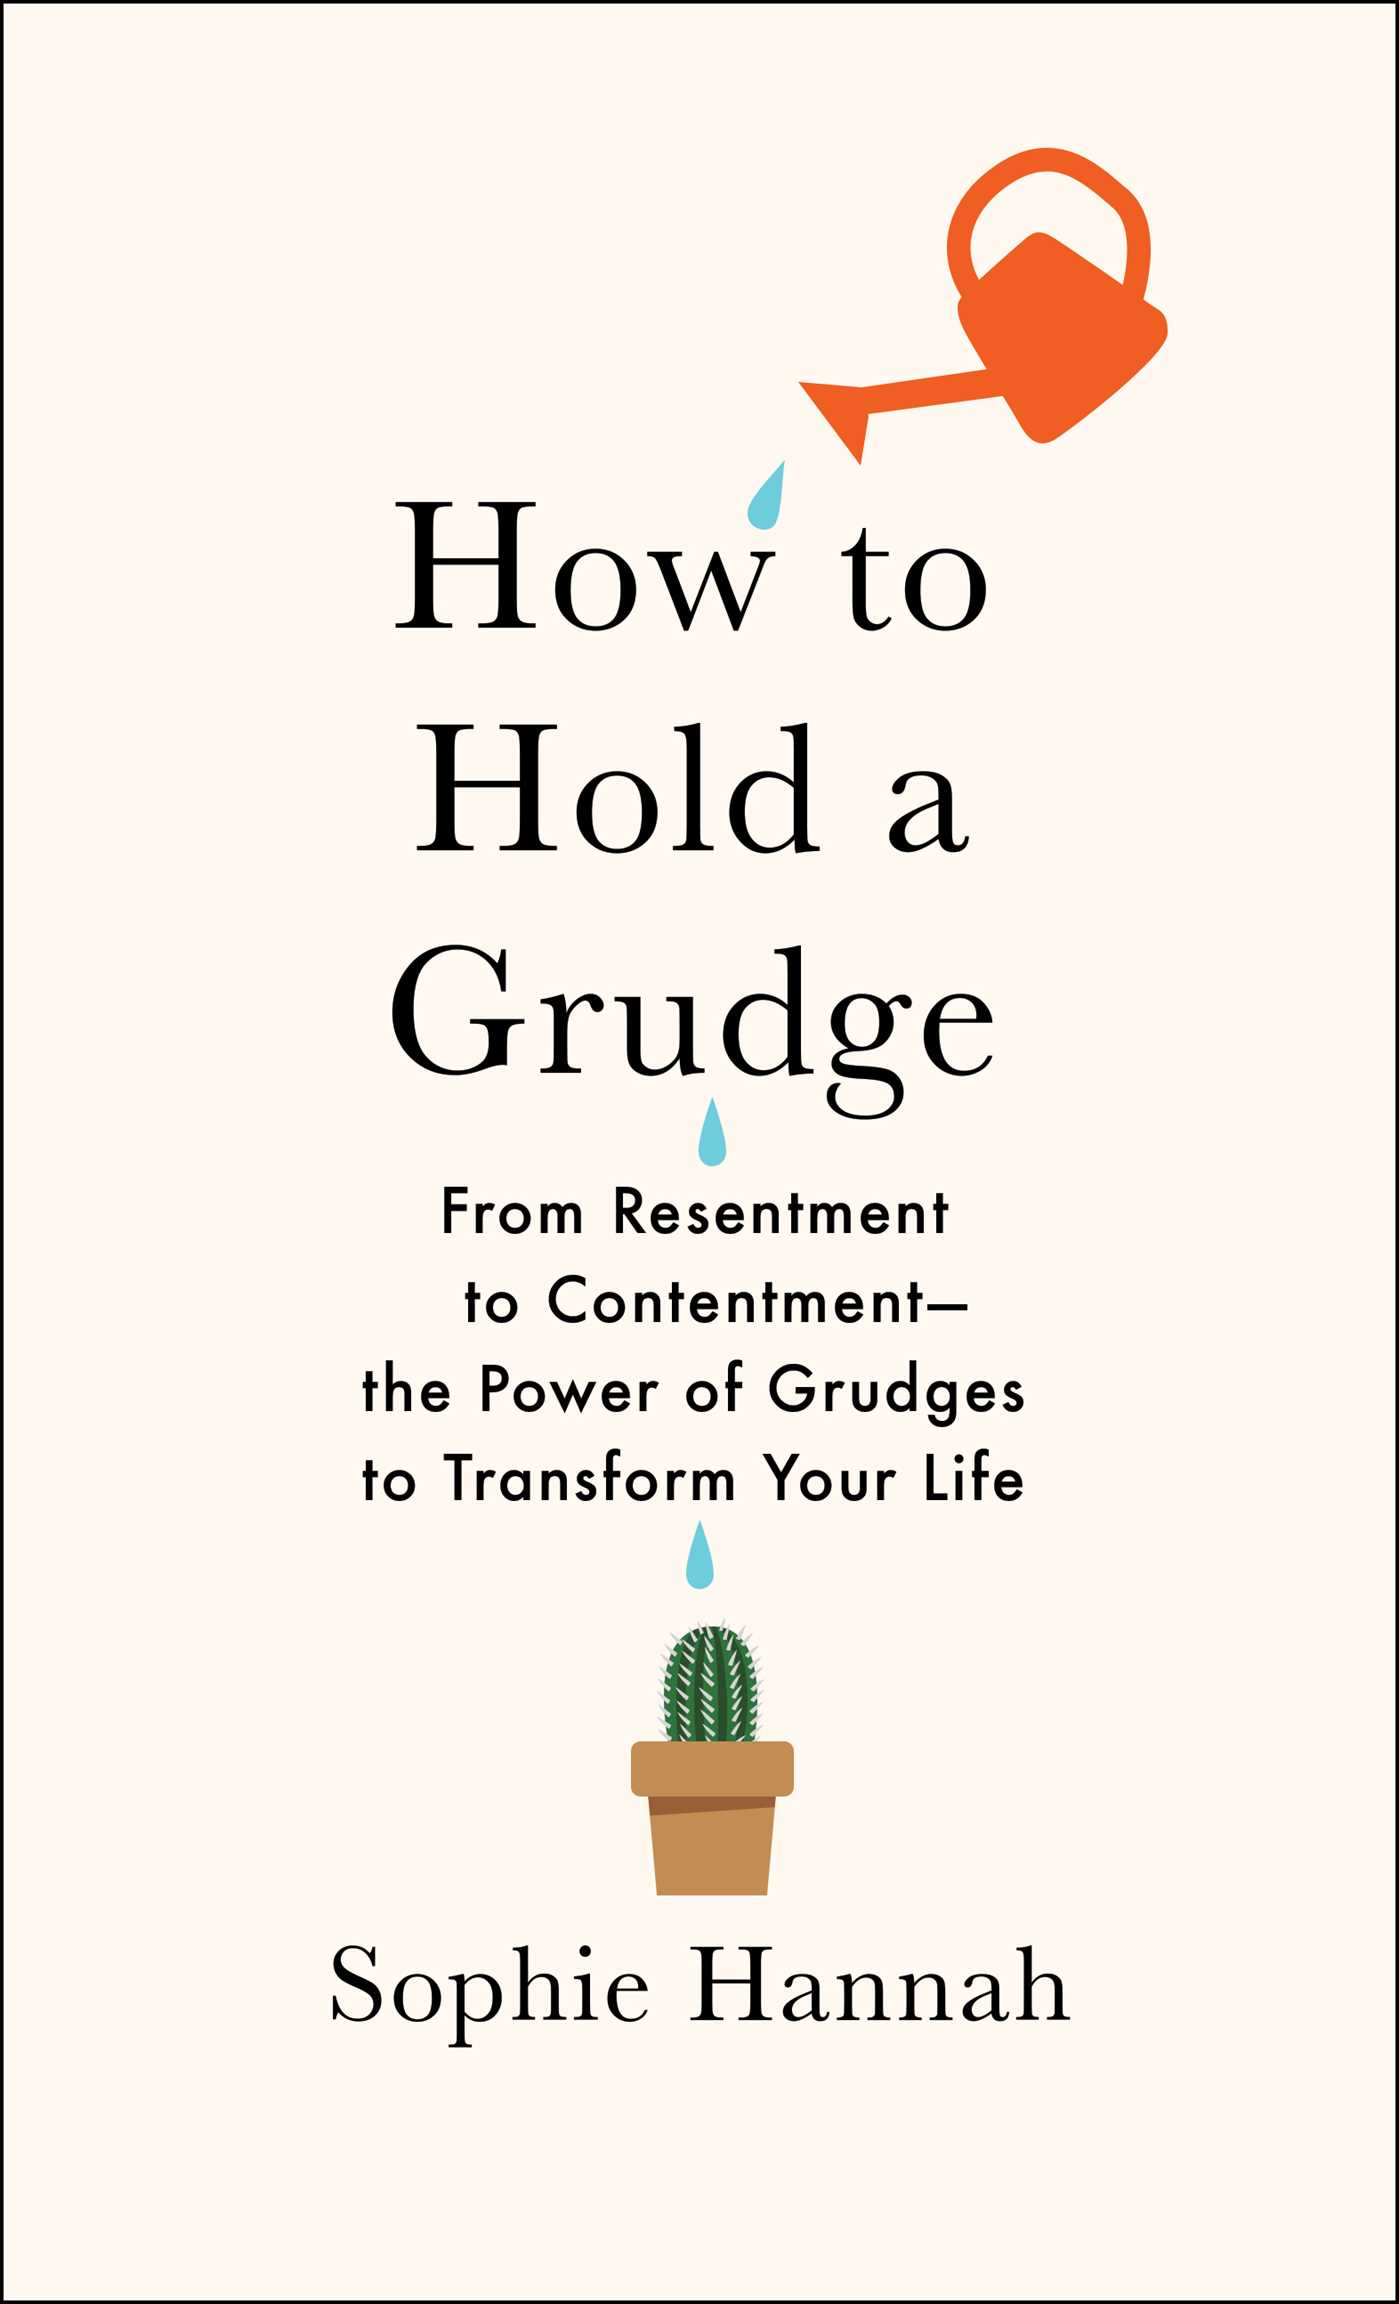 Book Cover Image (jpg): How to Hold a Grudge